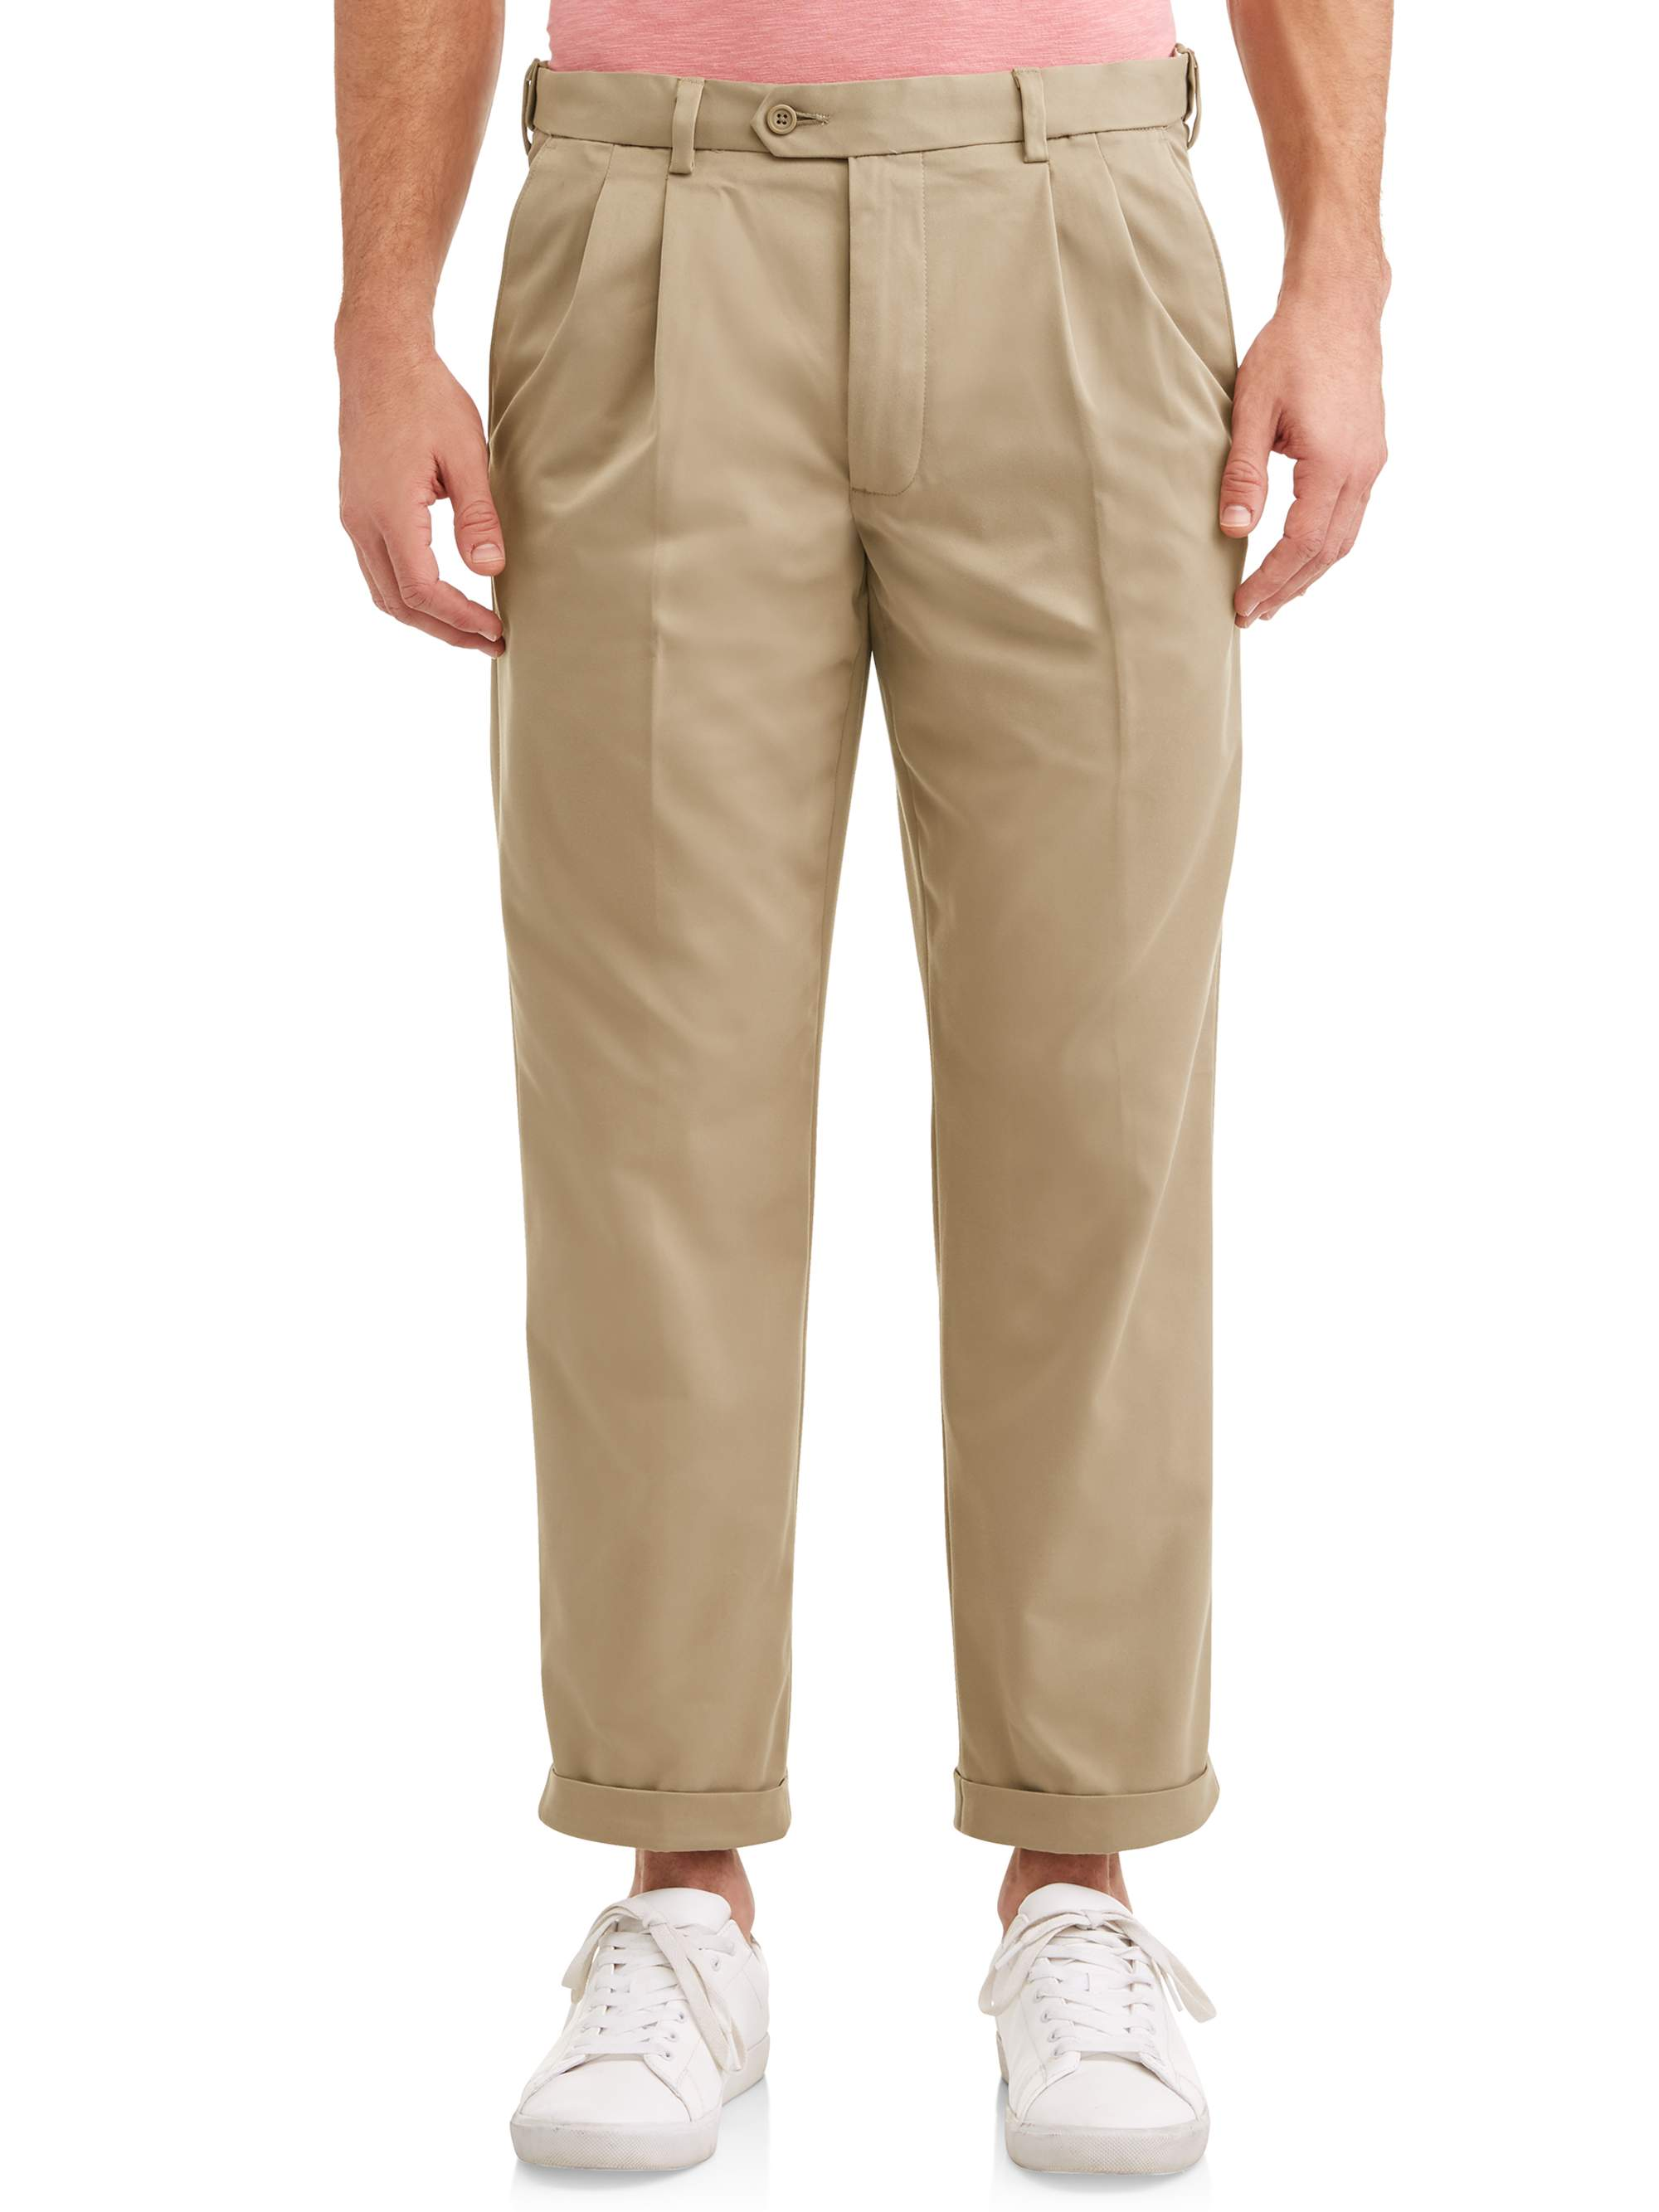 George Performance Dress Pant